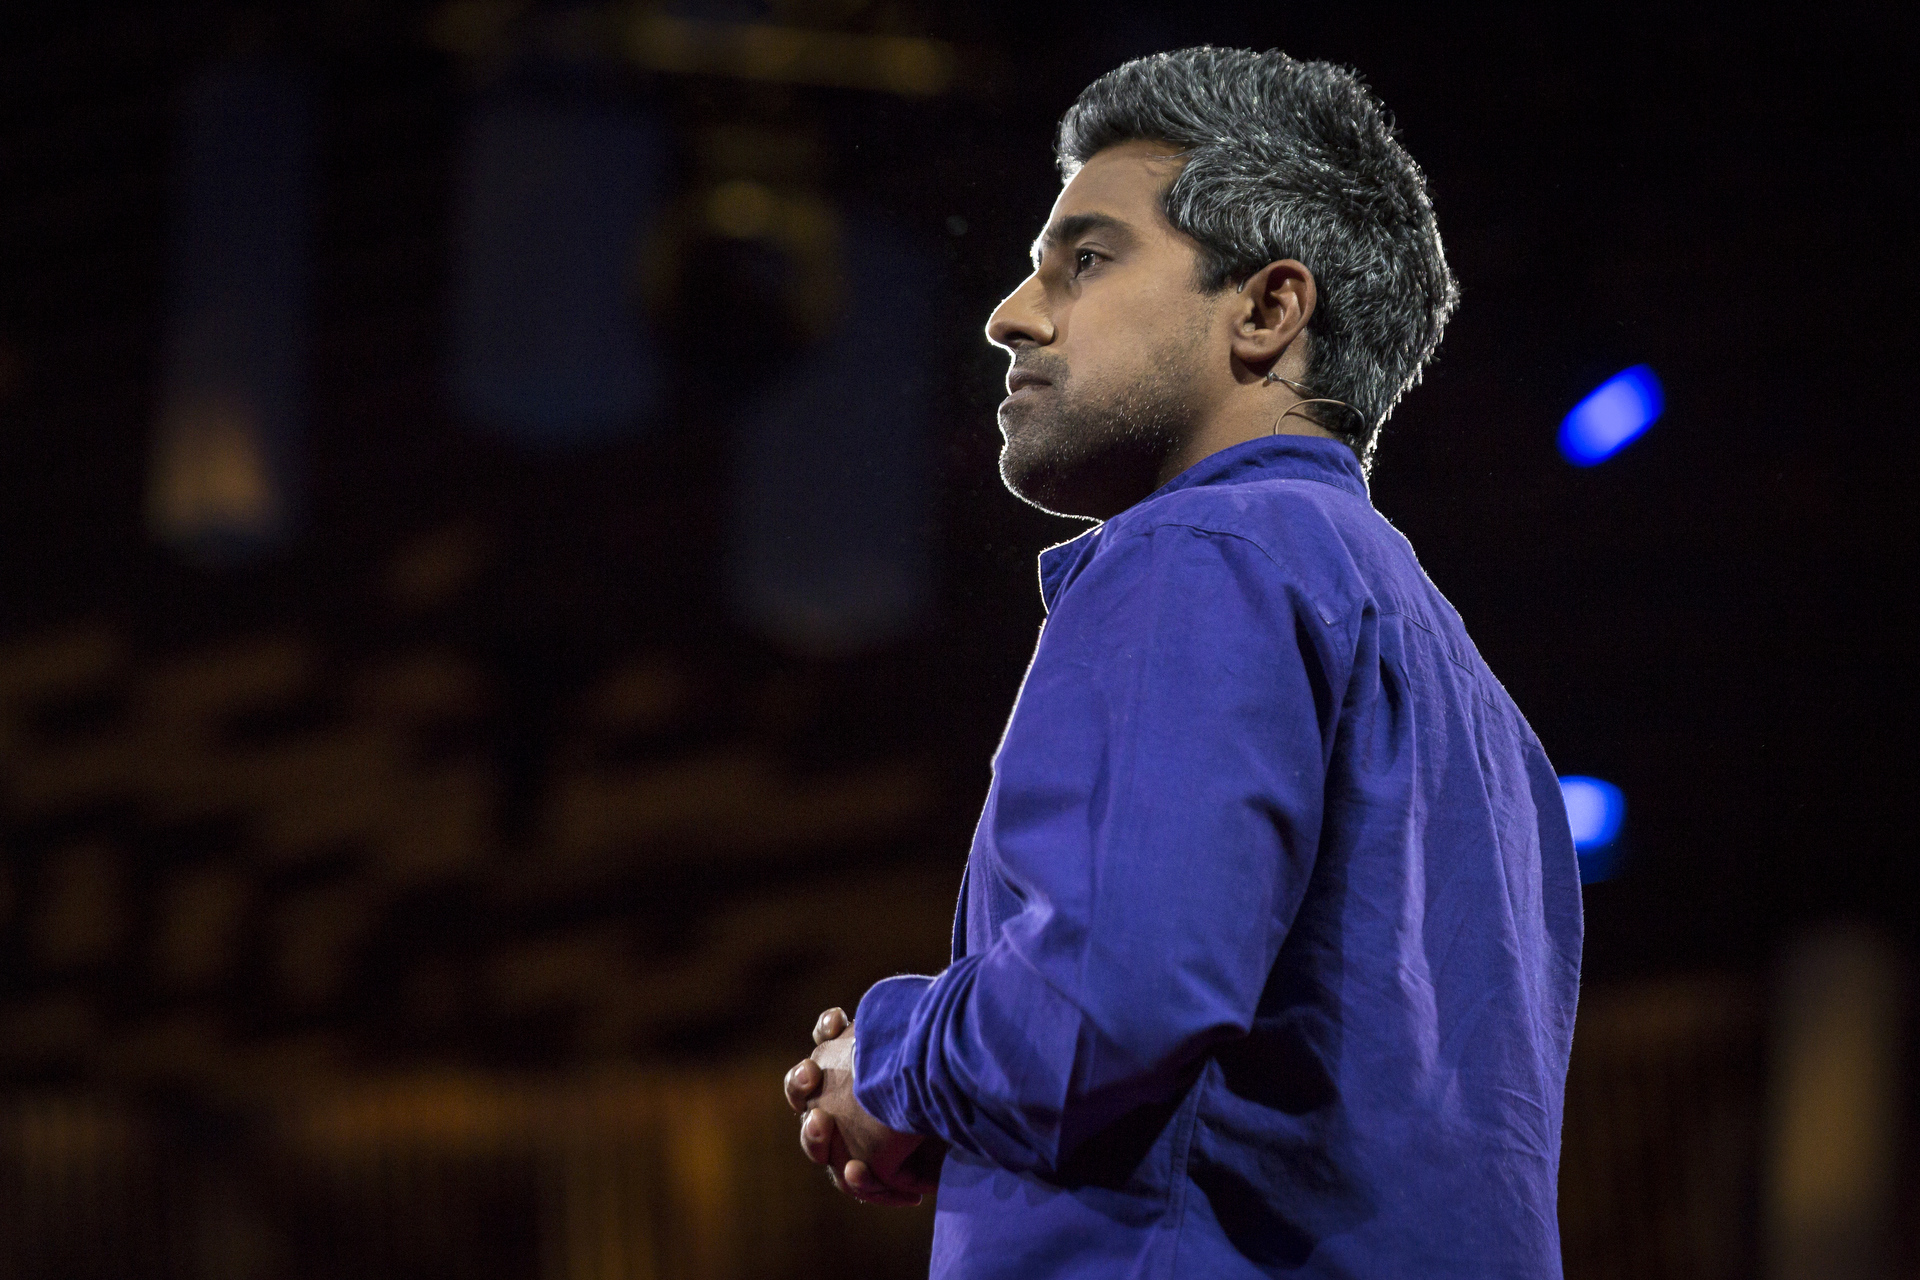 Anand Giridharadas speaks at TED 2015